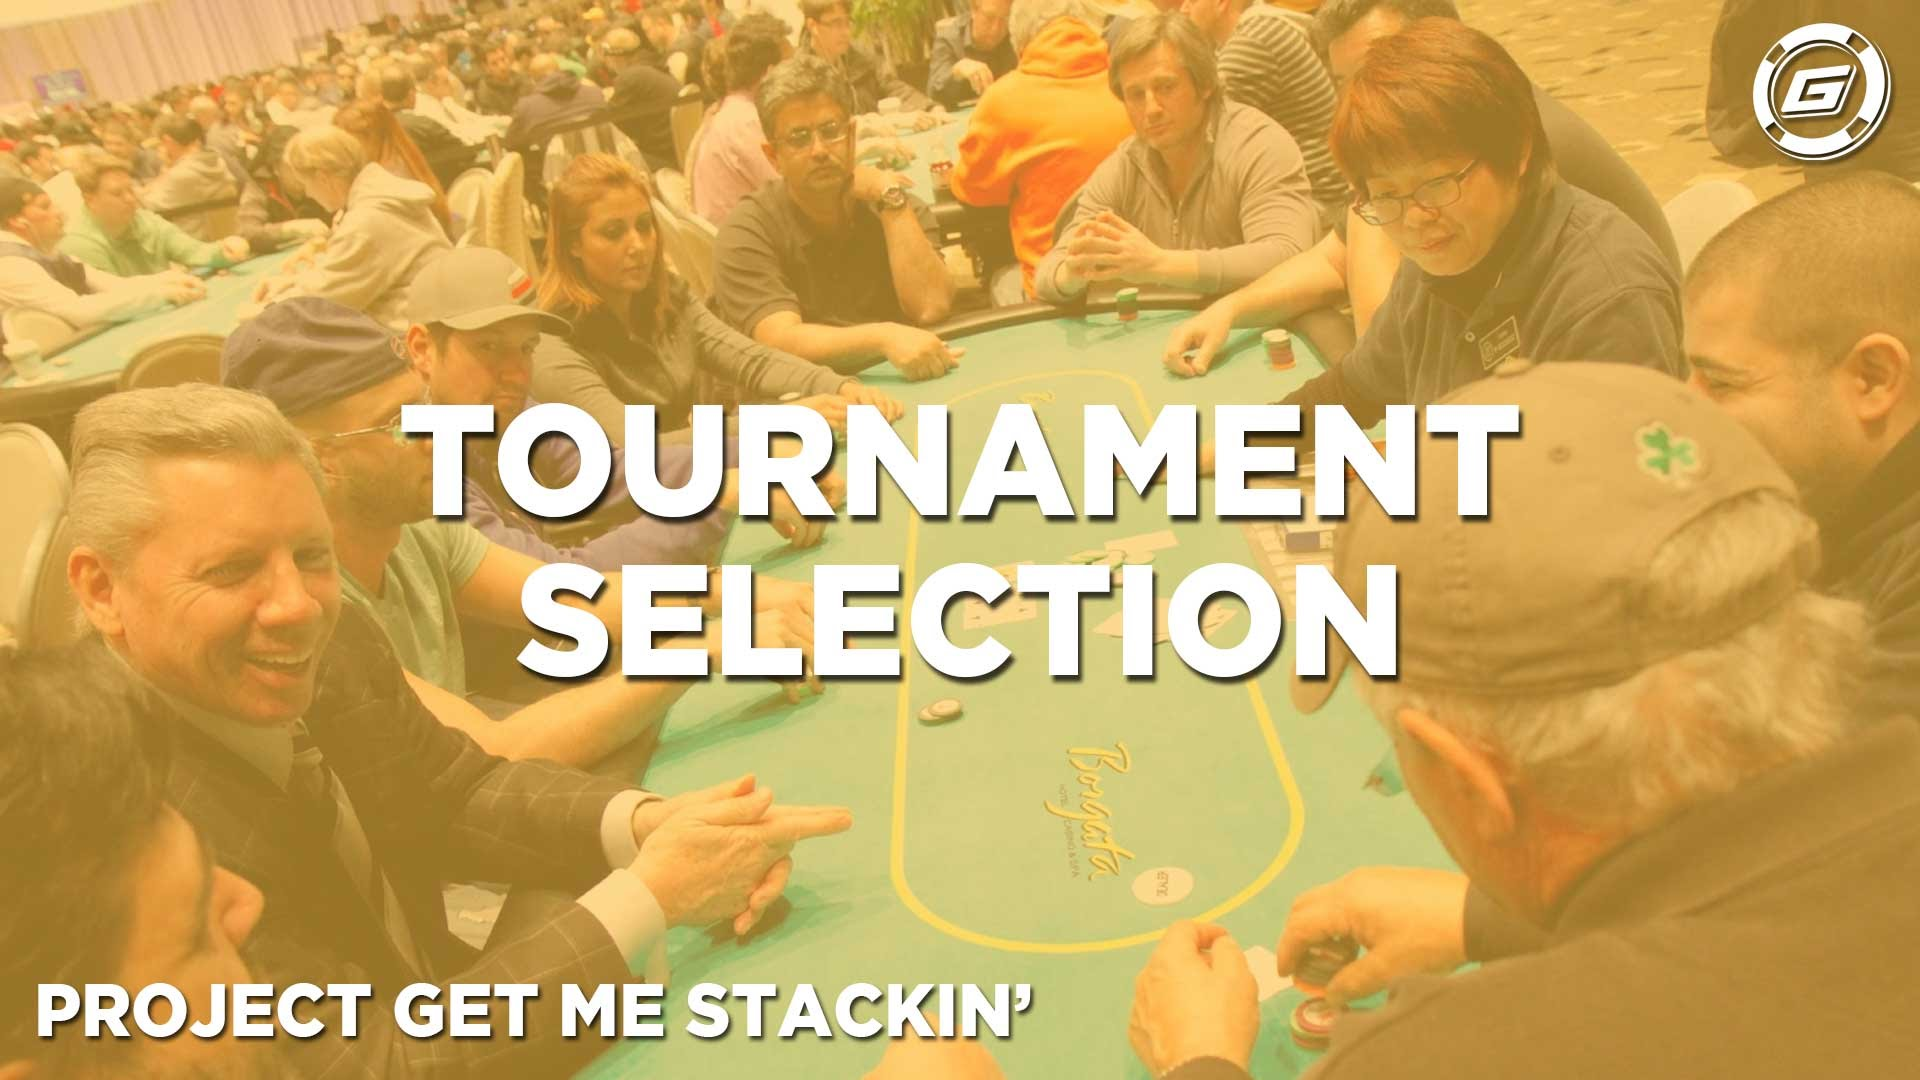 Tournament Selection For Online Poker - LESSON #2